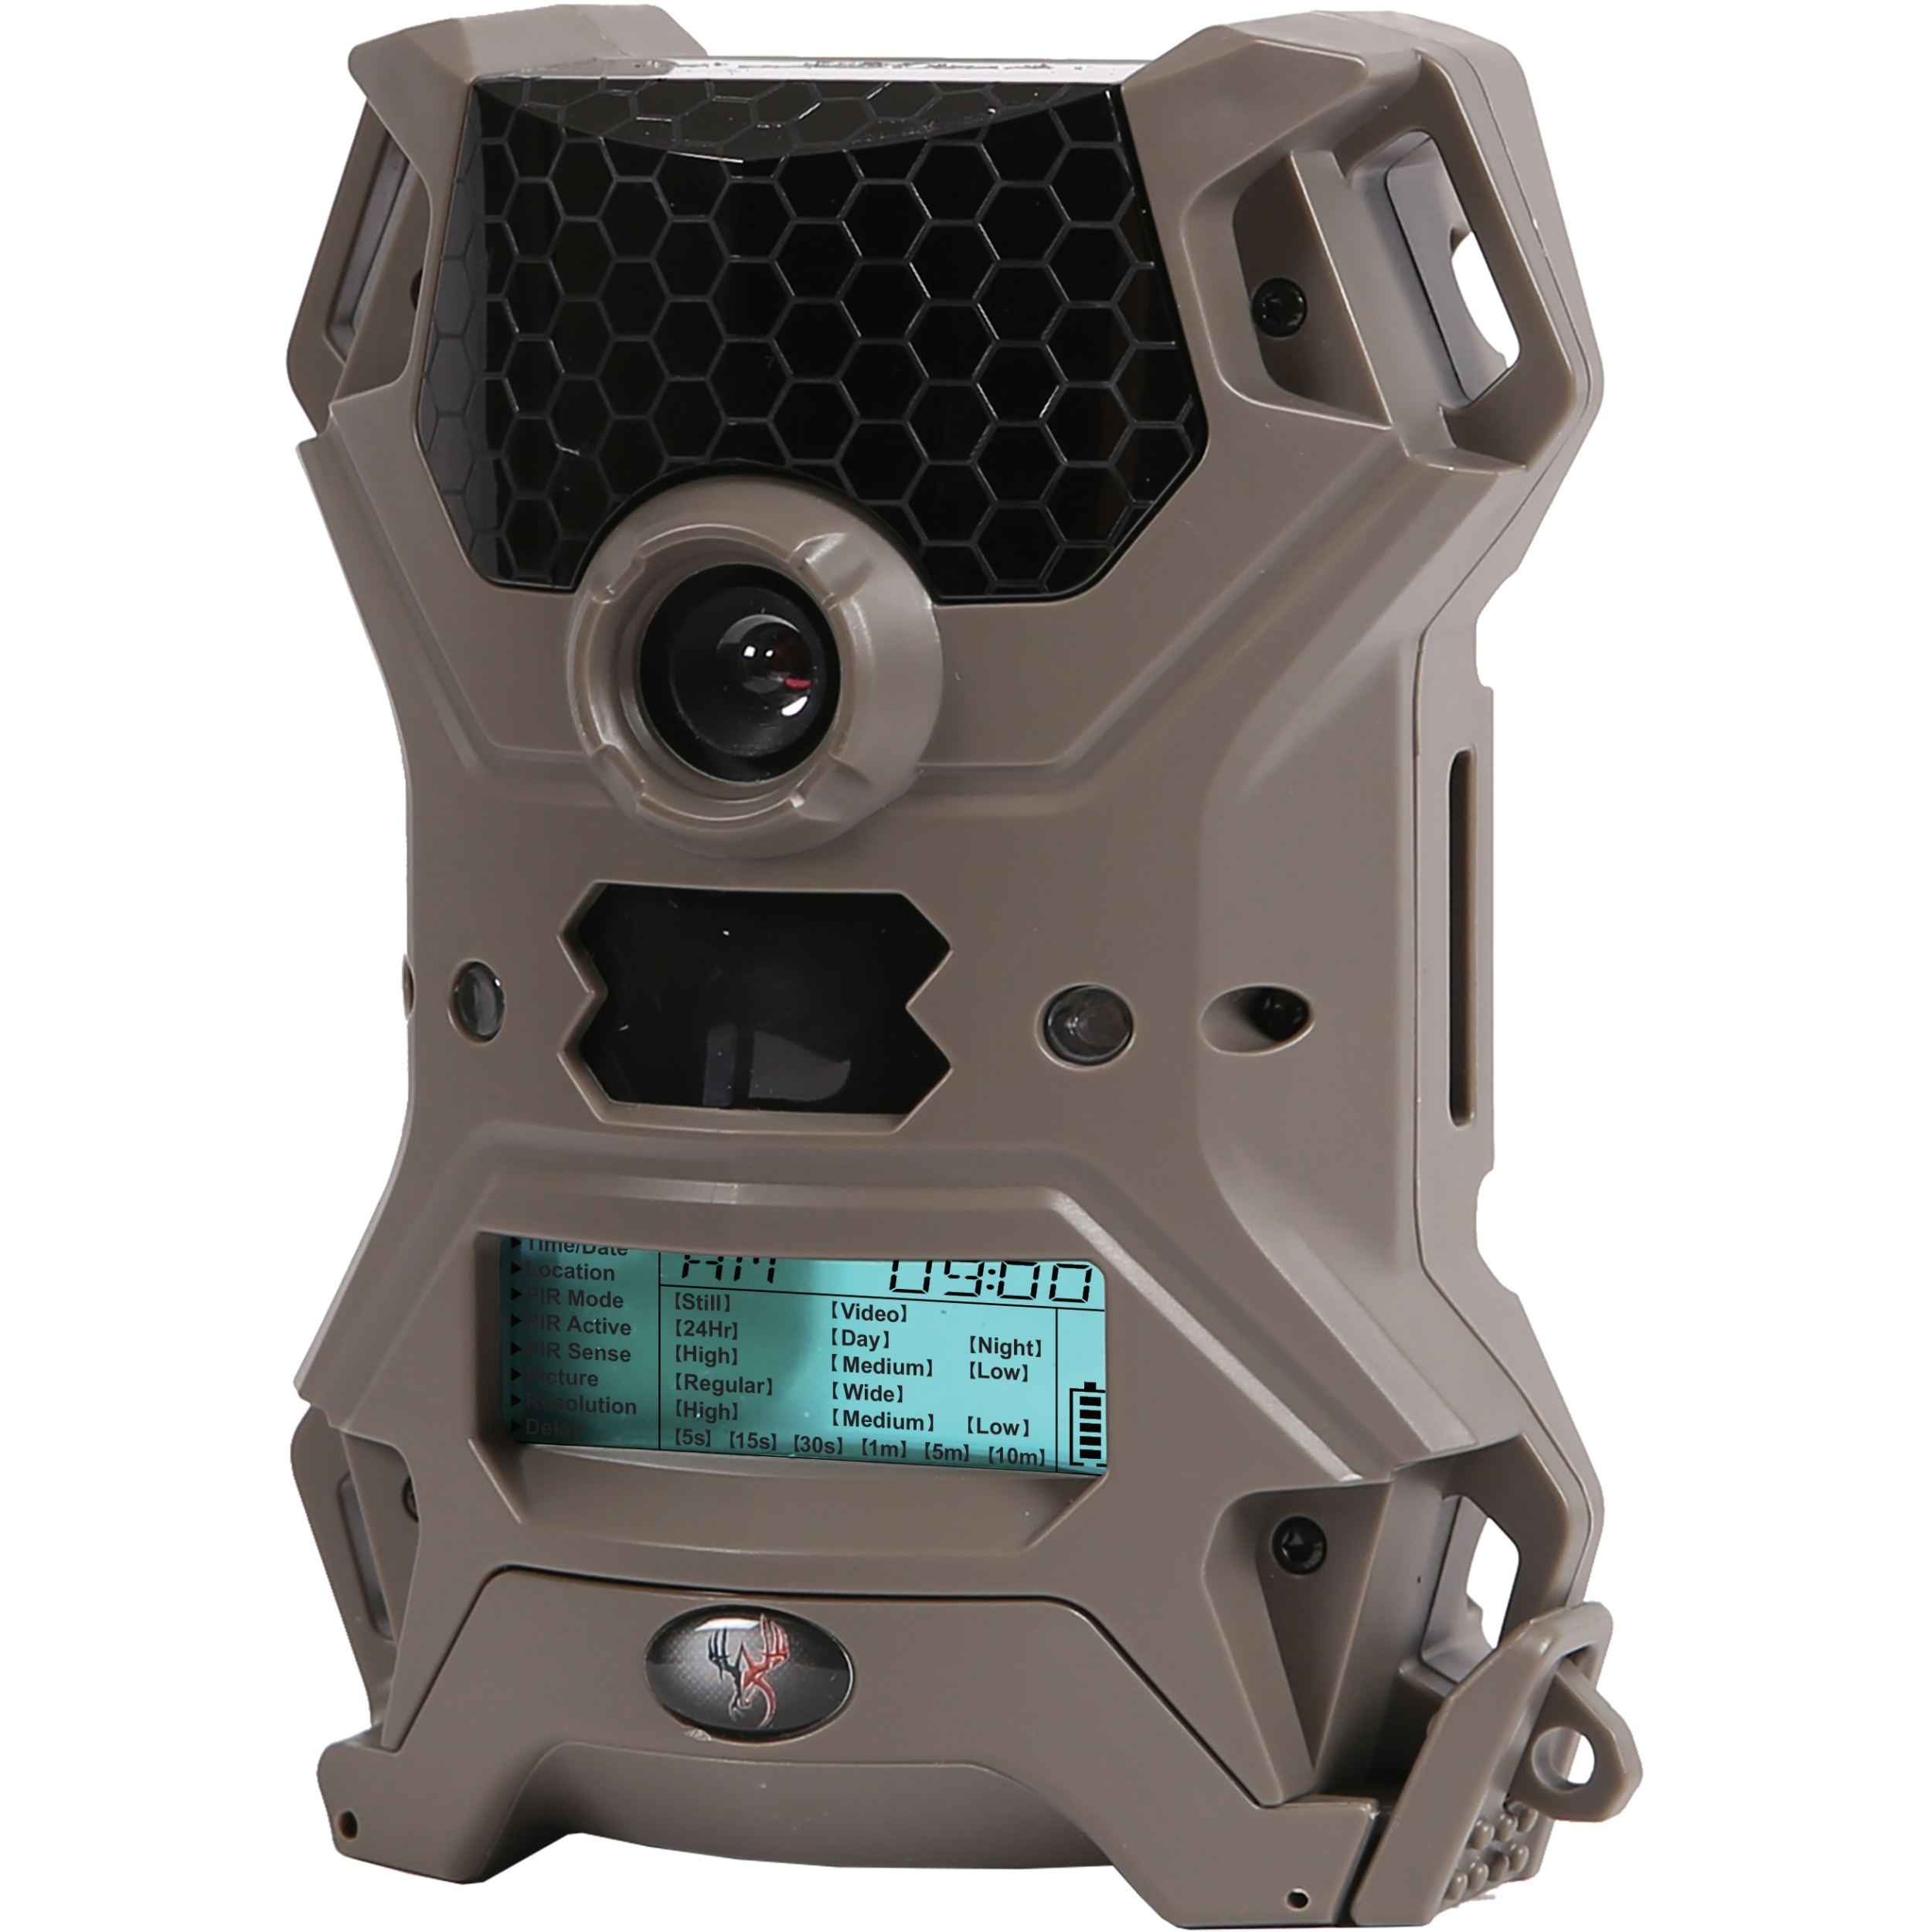 Wildgame Innovations Vision 8 Lightsout Game Camera by Wildgame Innovations